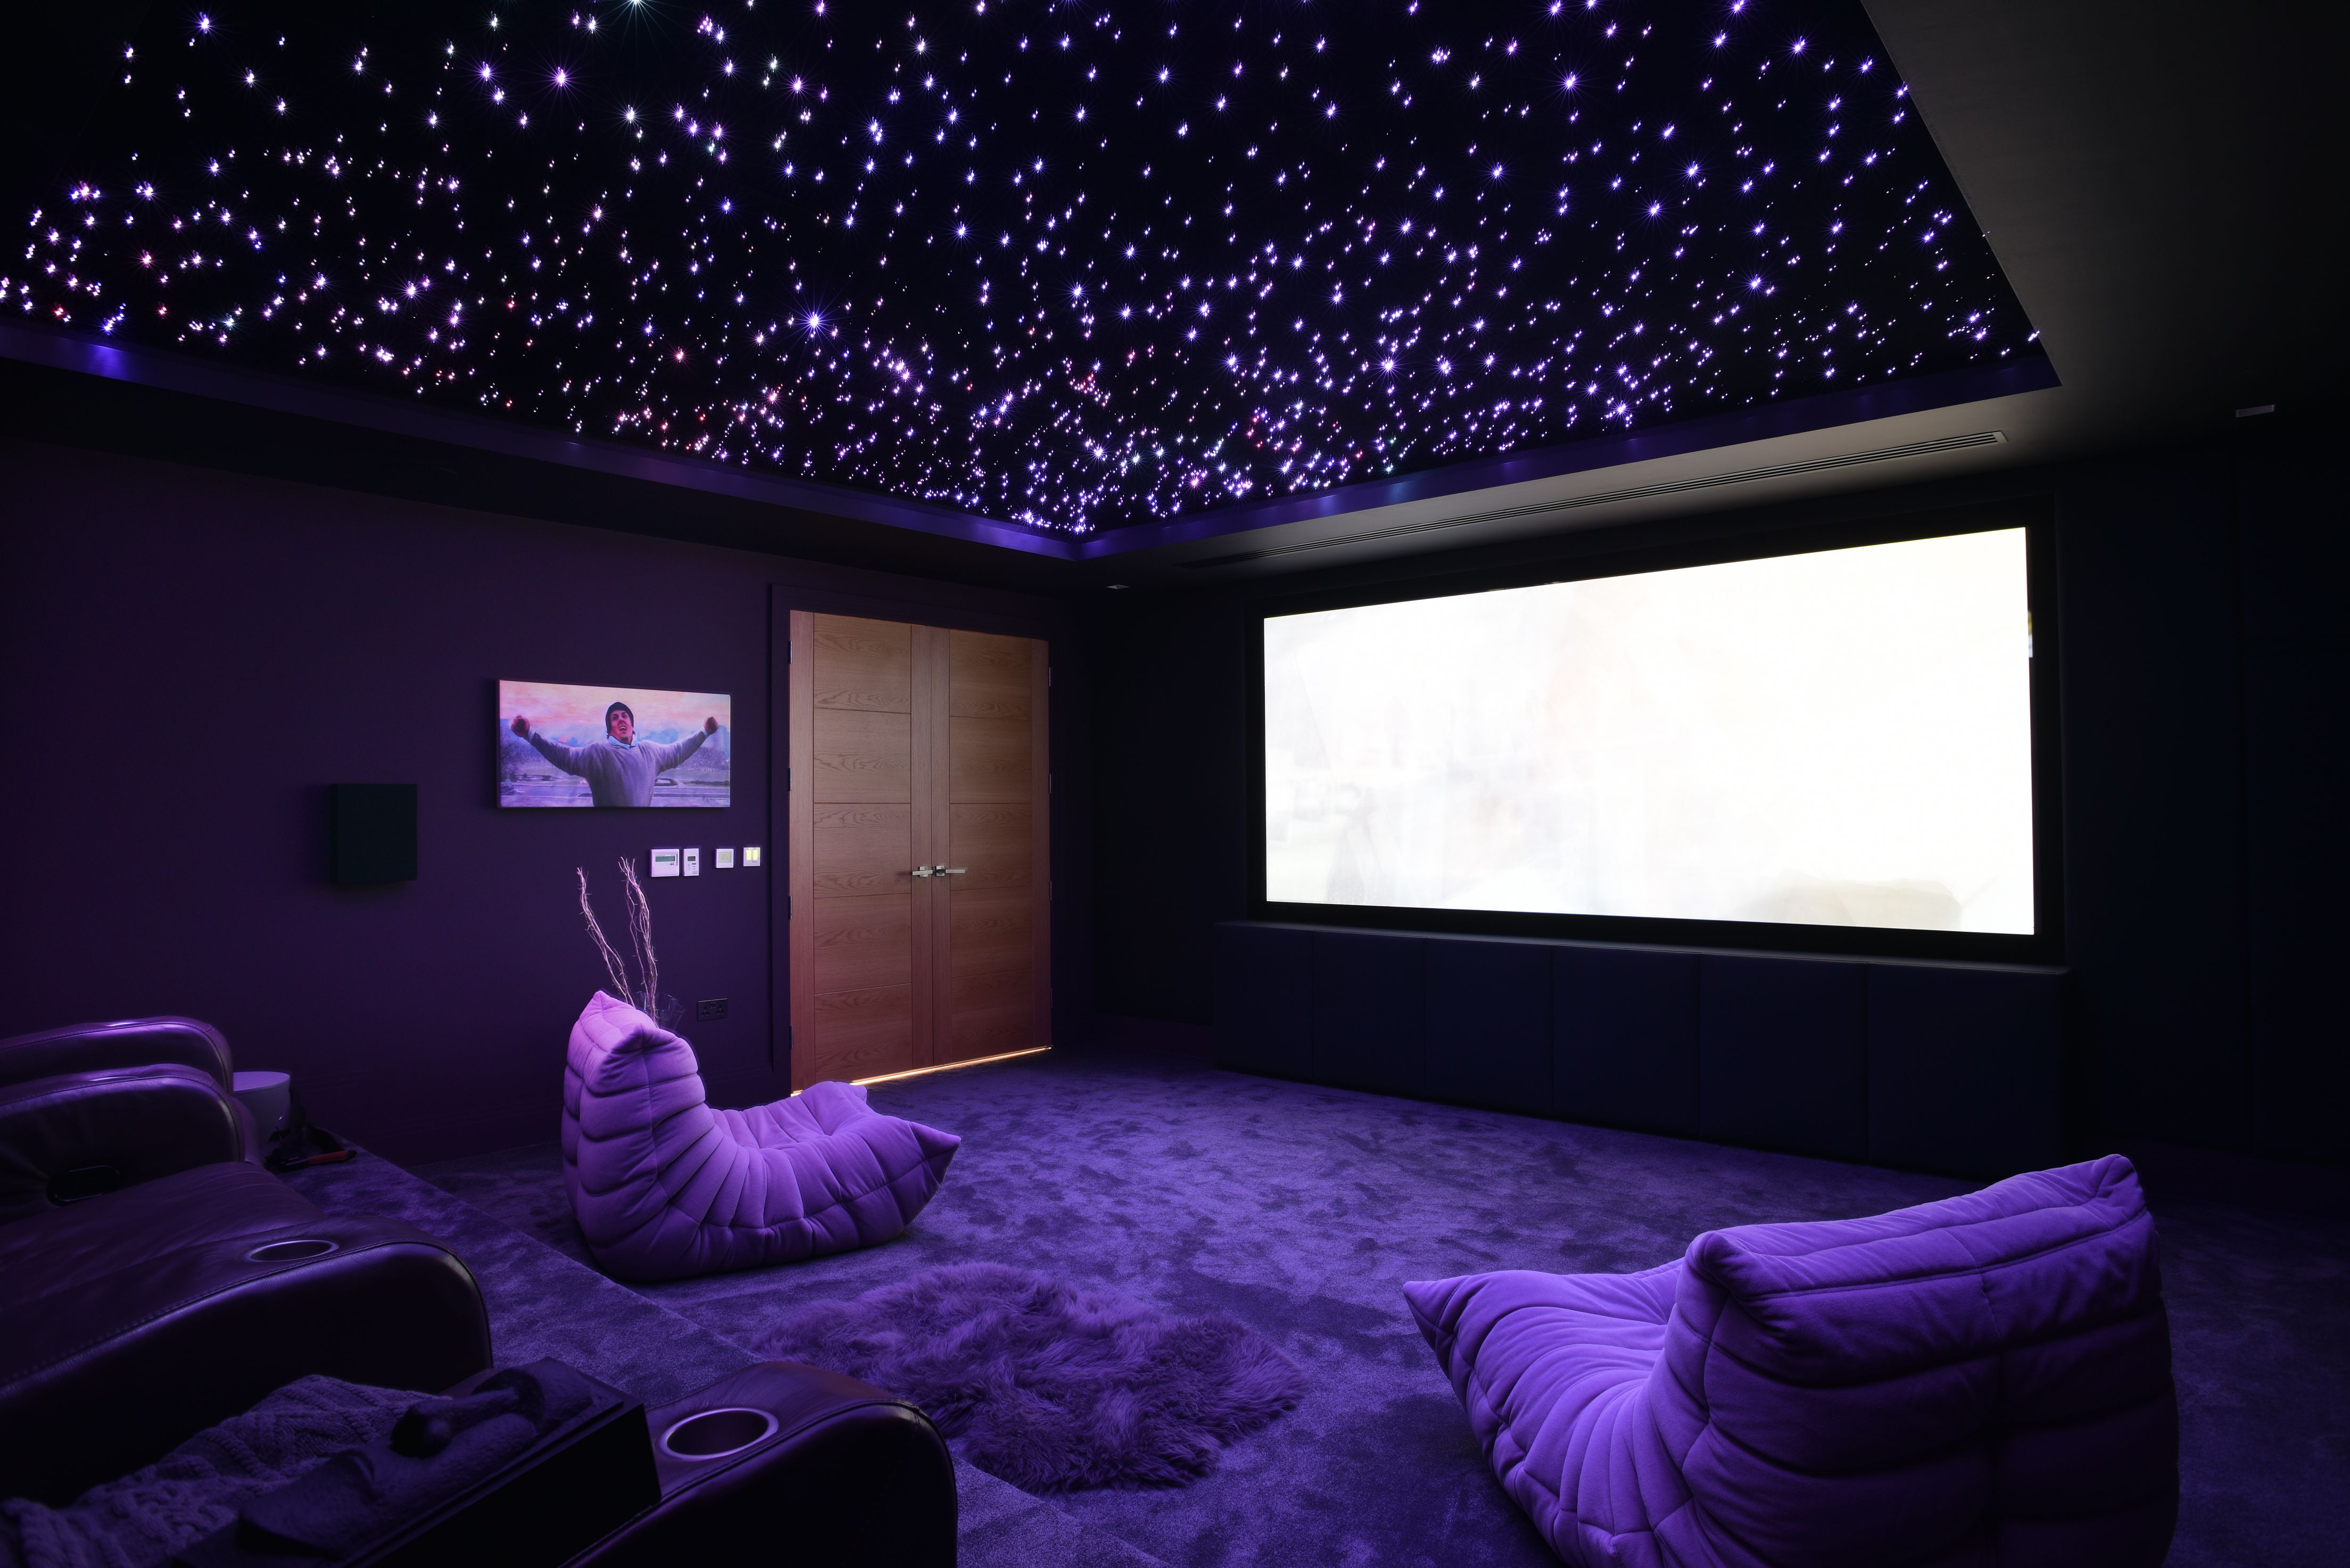 Pin by Seetha K on Dream home Home cinema room, Home